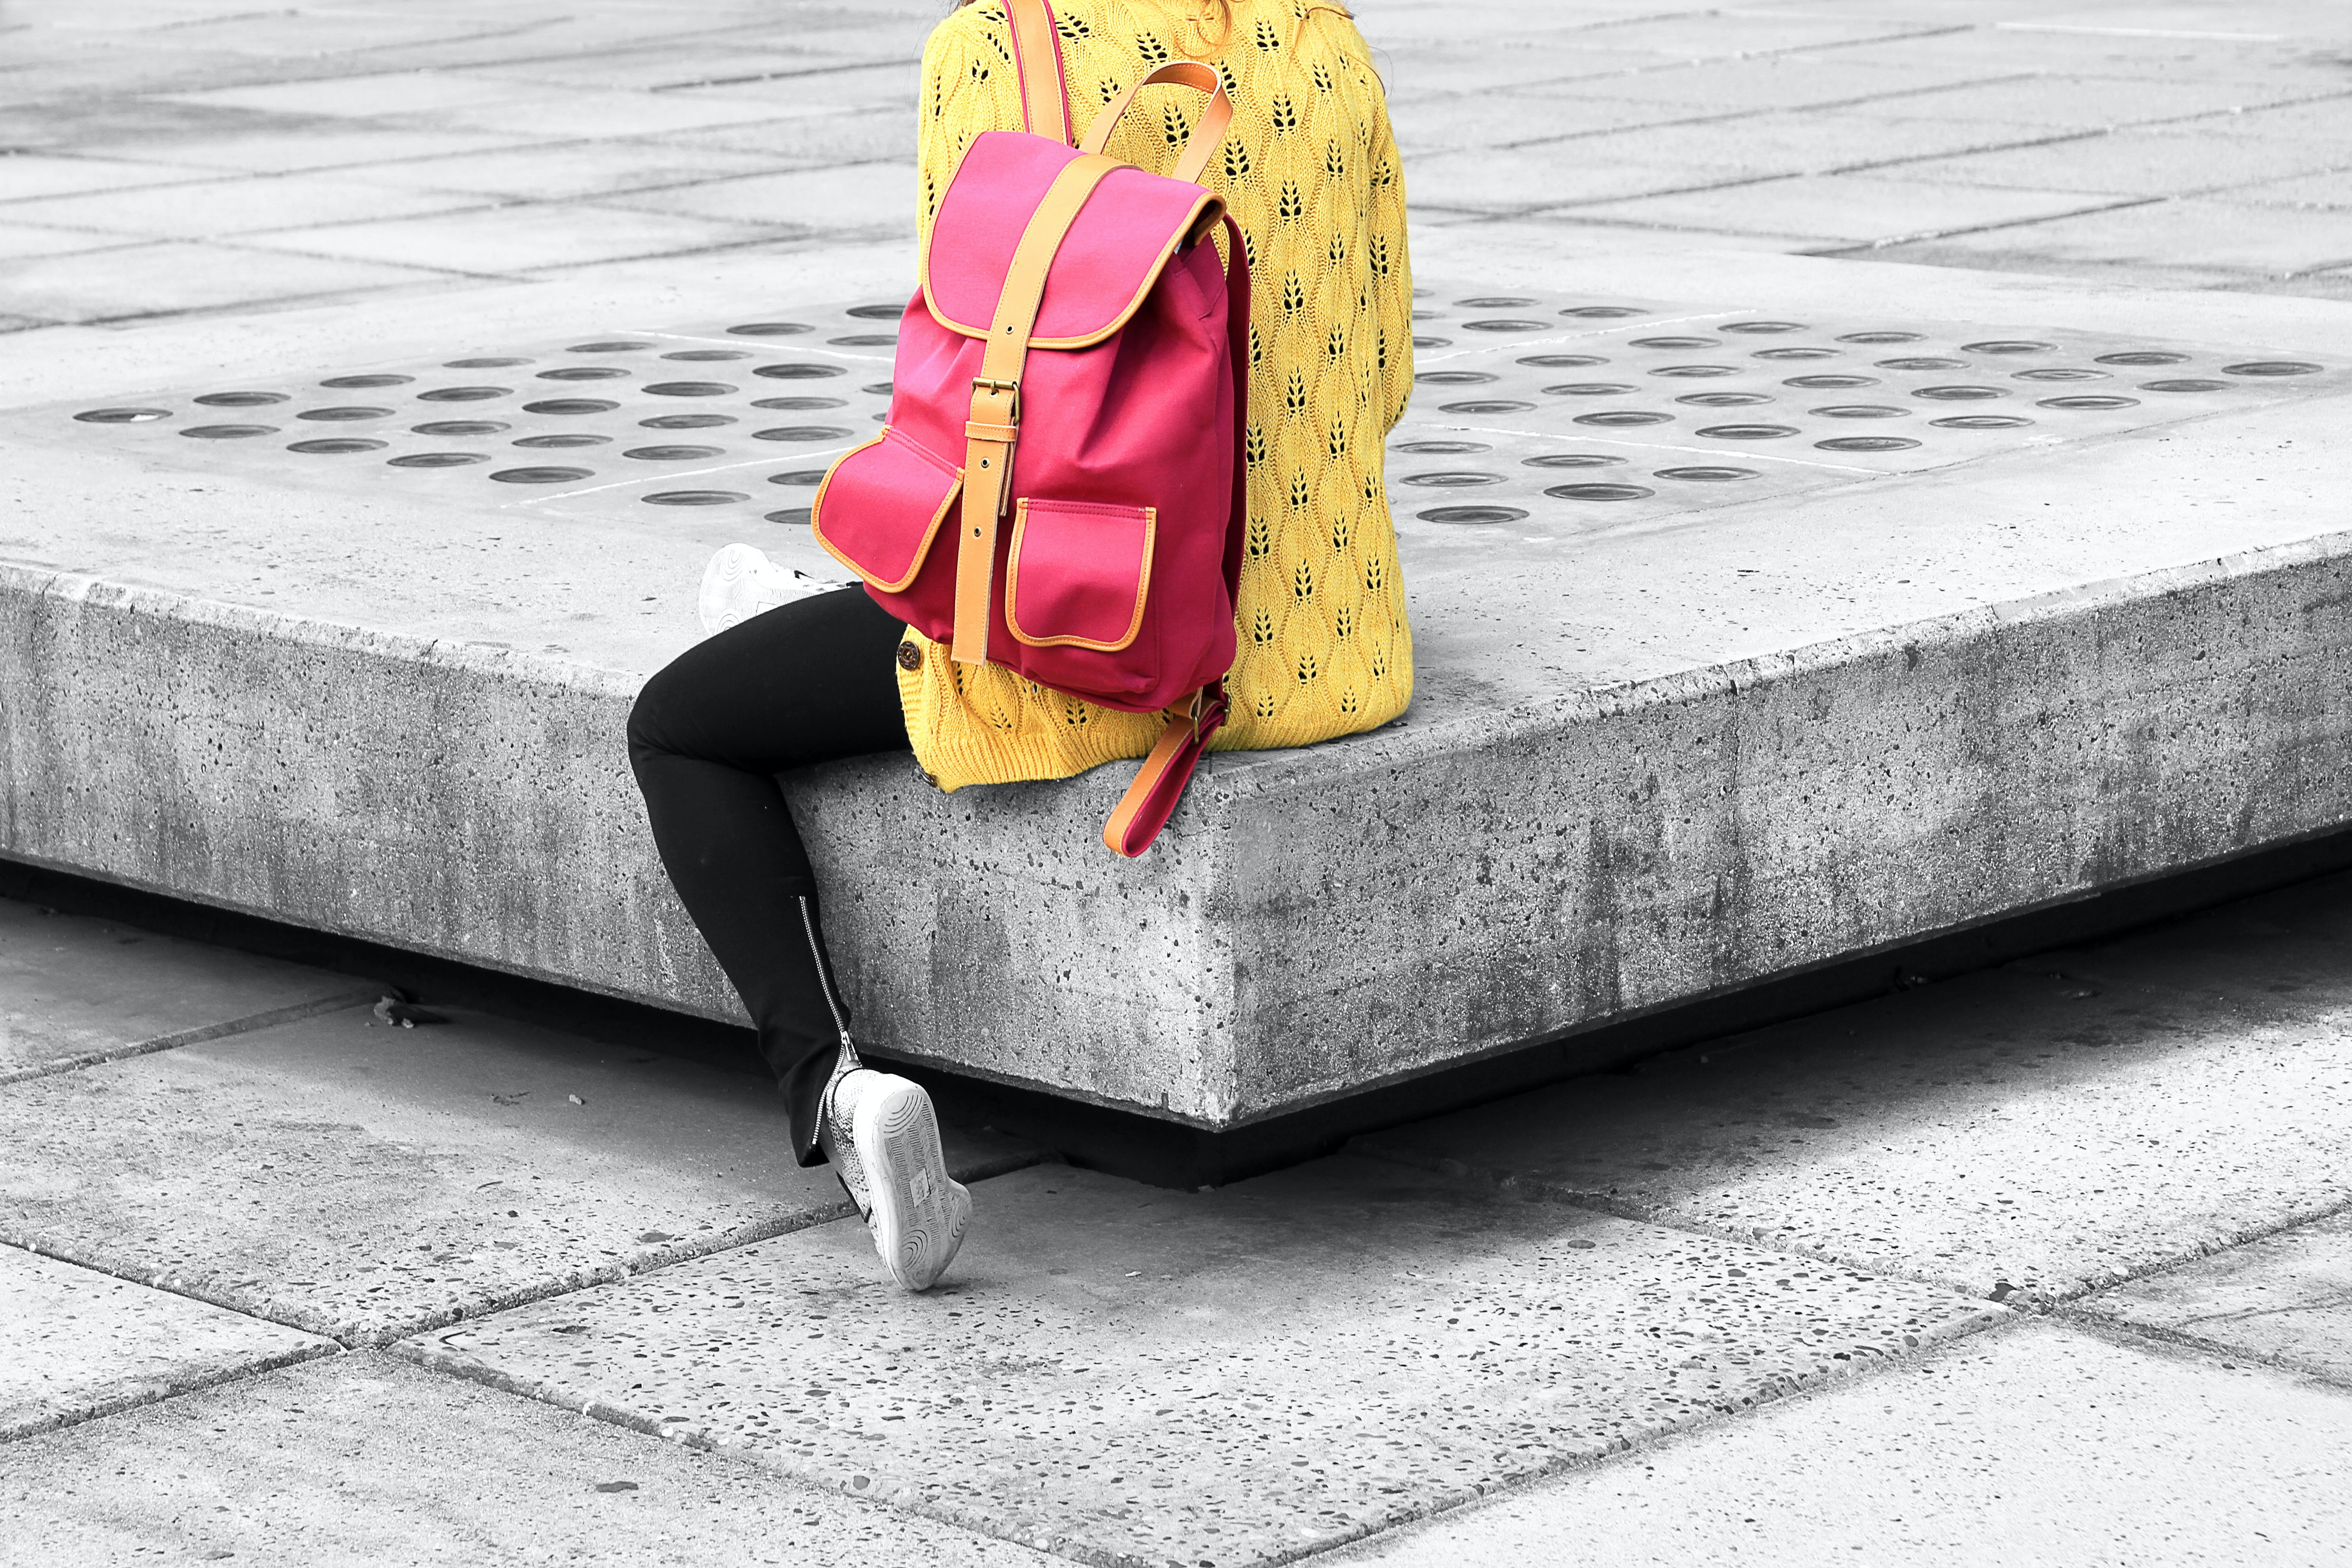 Person in a bright yellow top wearing a pink backpack